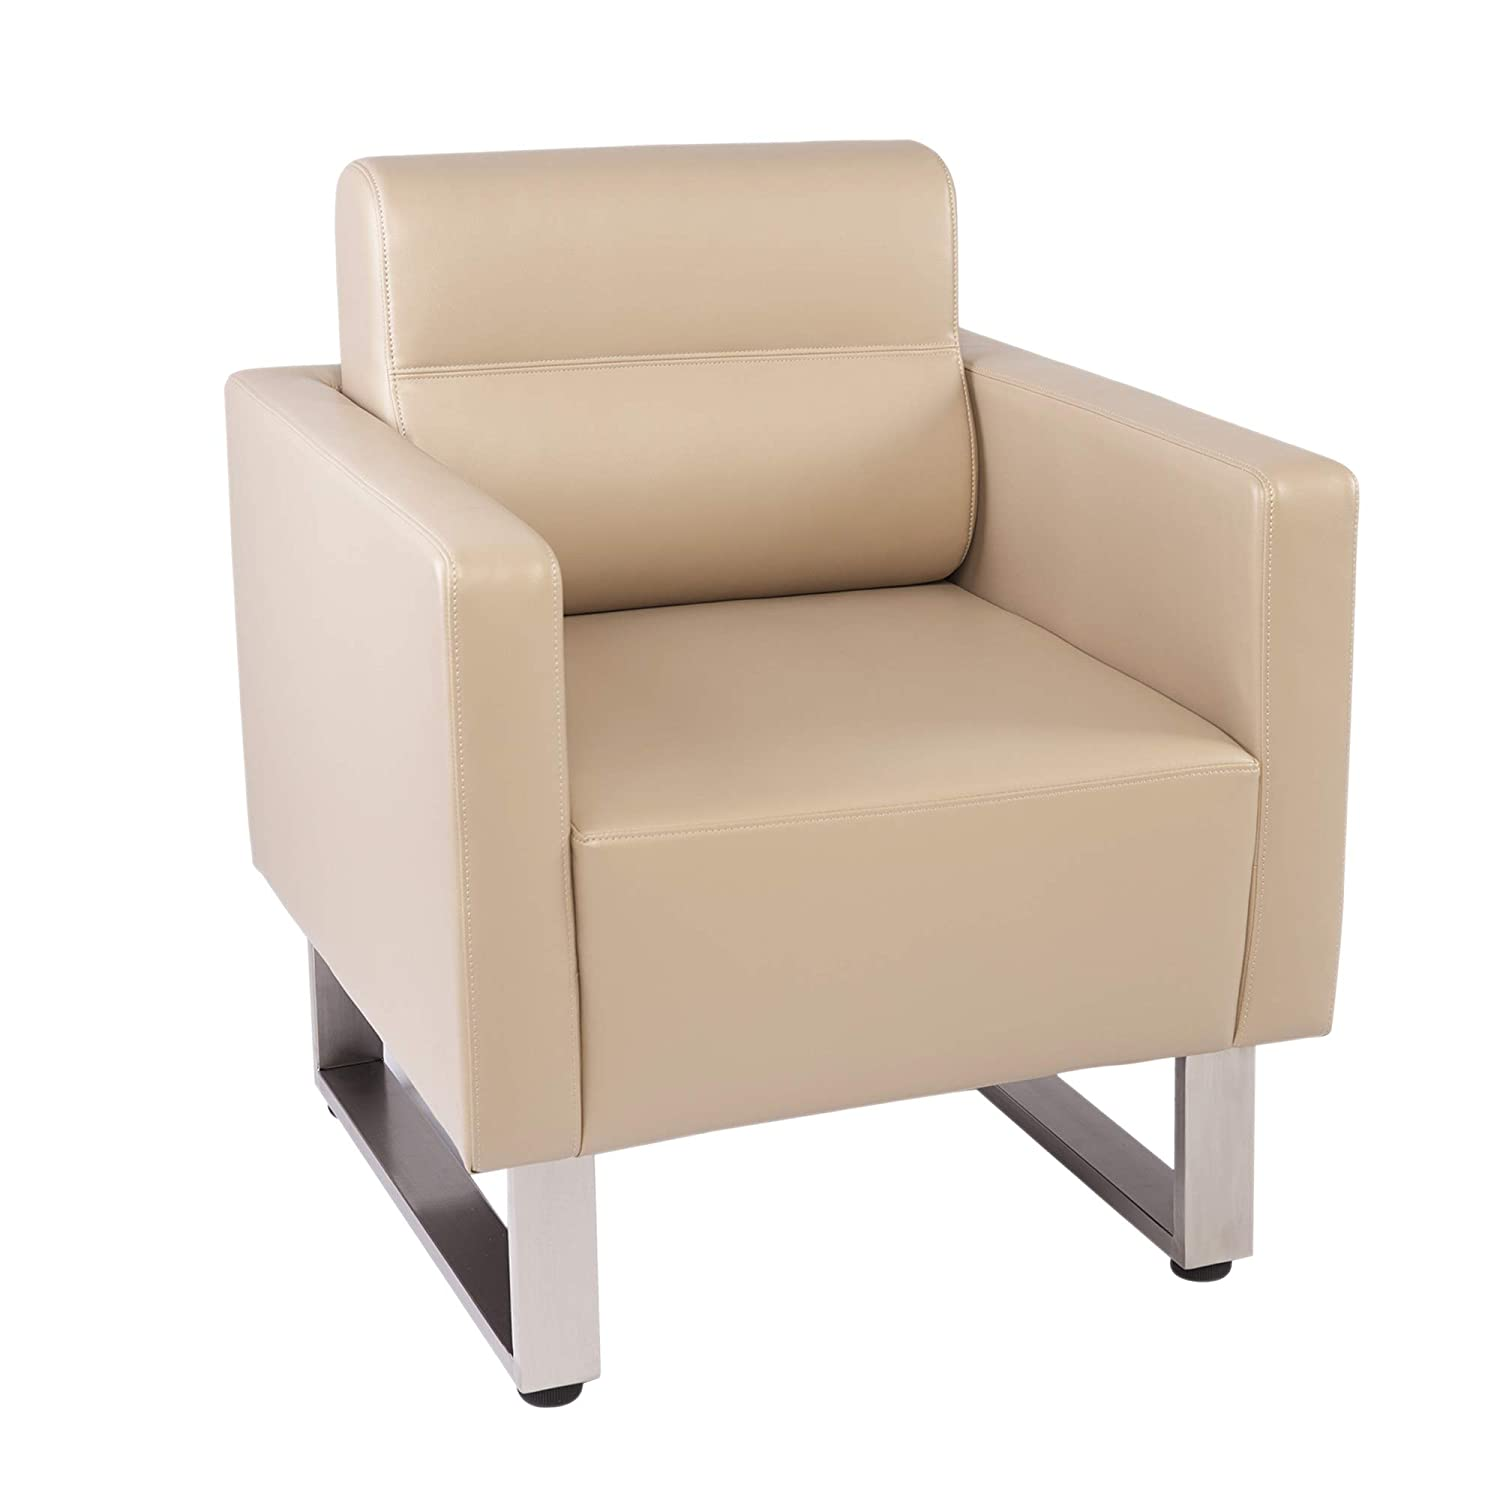 Bon Amazon.com : LuckyerMore Barrel Chair Lobby Chair Leather Occasional Sofa  Chairs Reception Guest Single Sofa For Office Meeting Room Living Room, ...